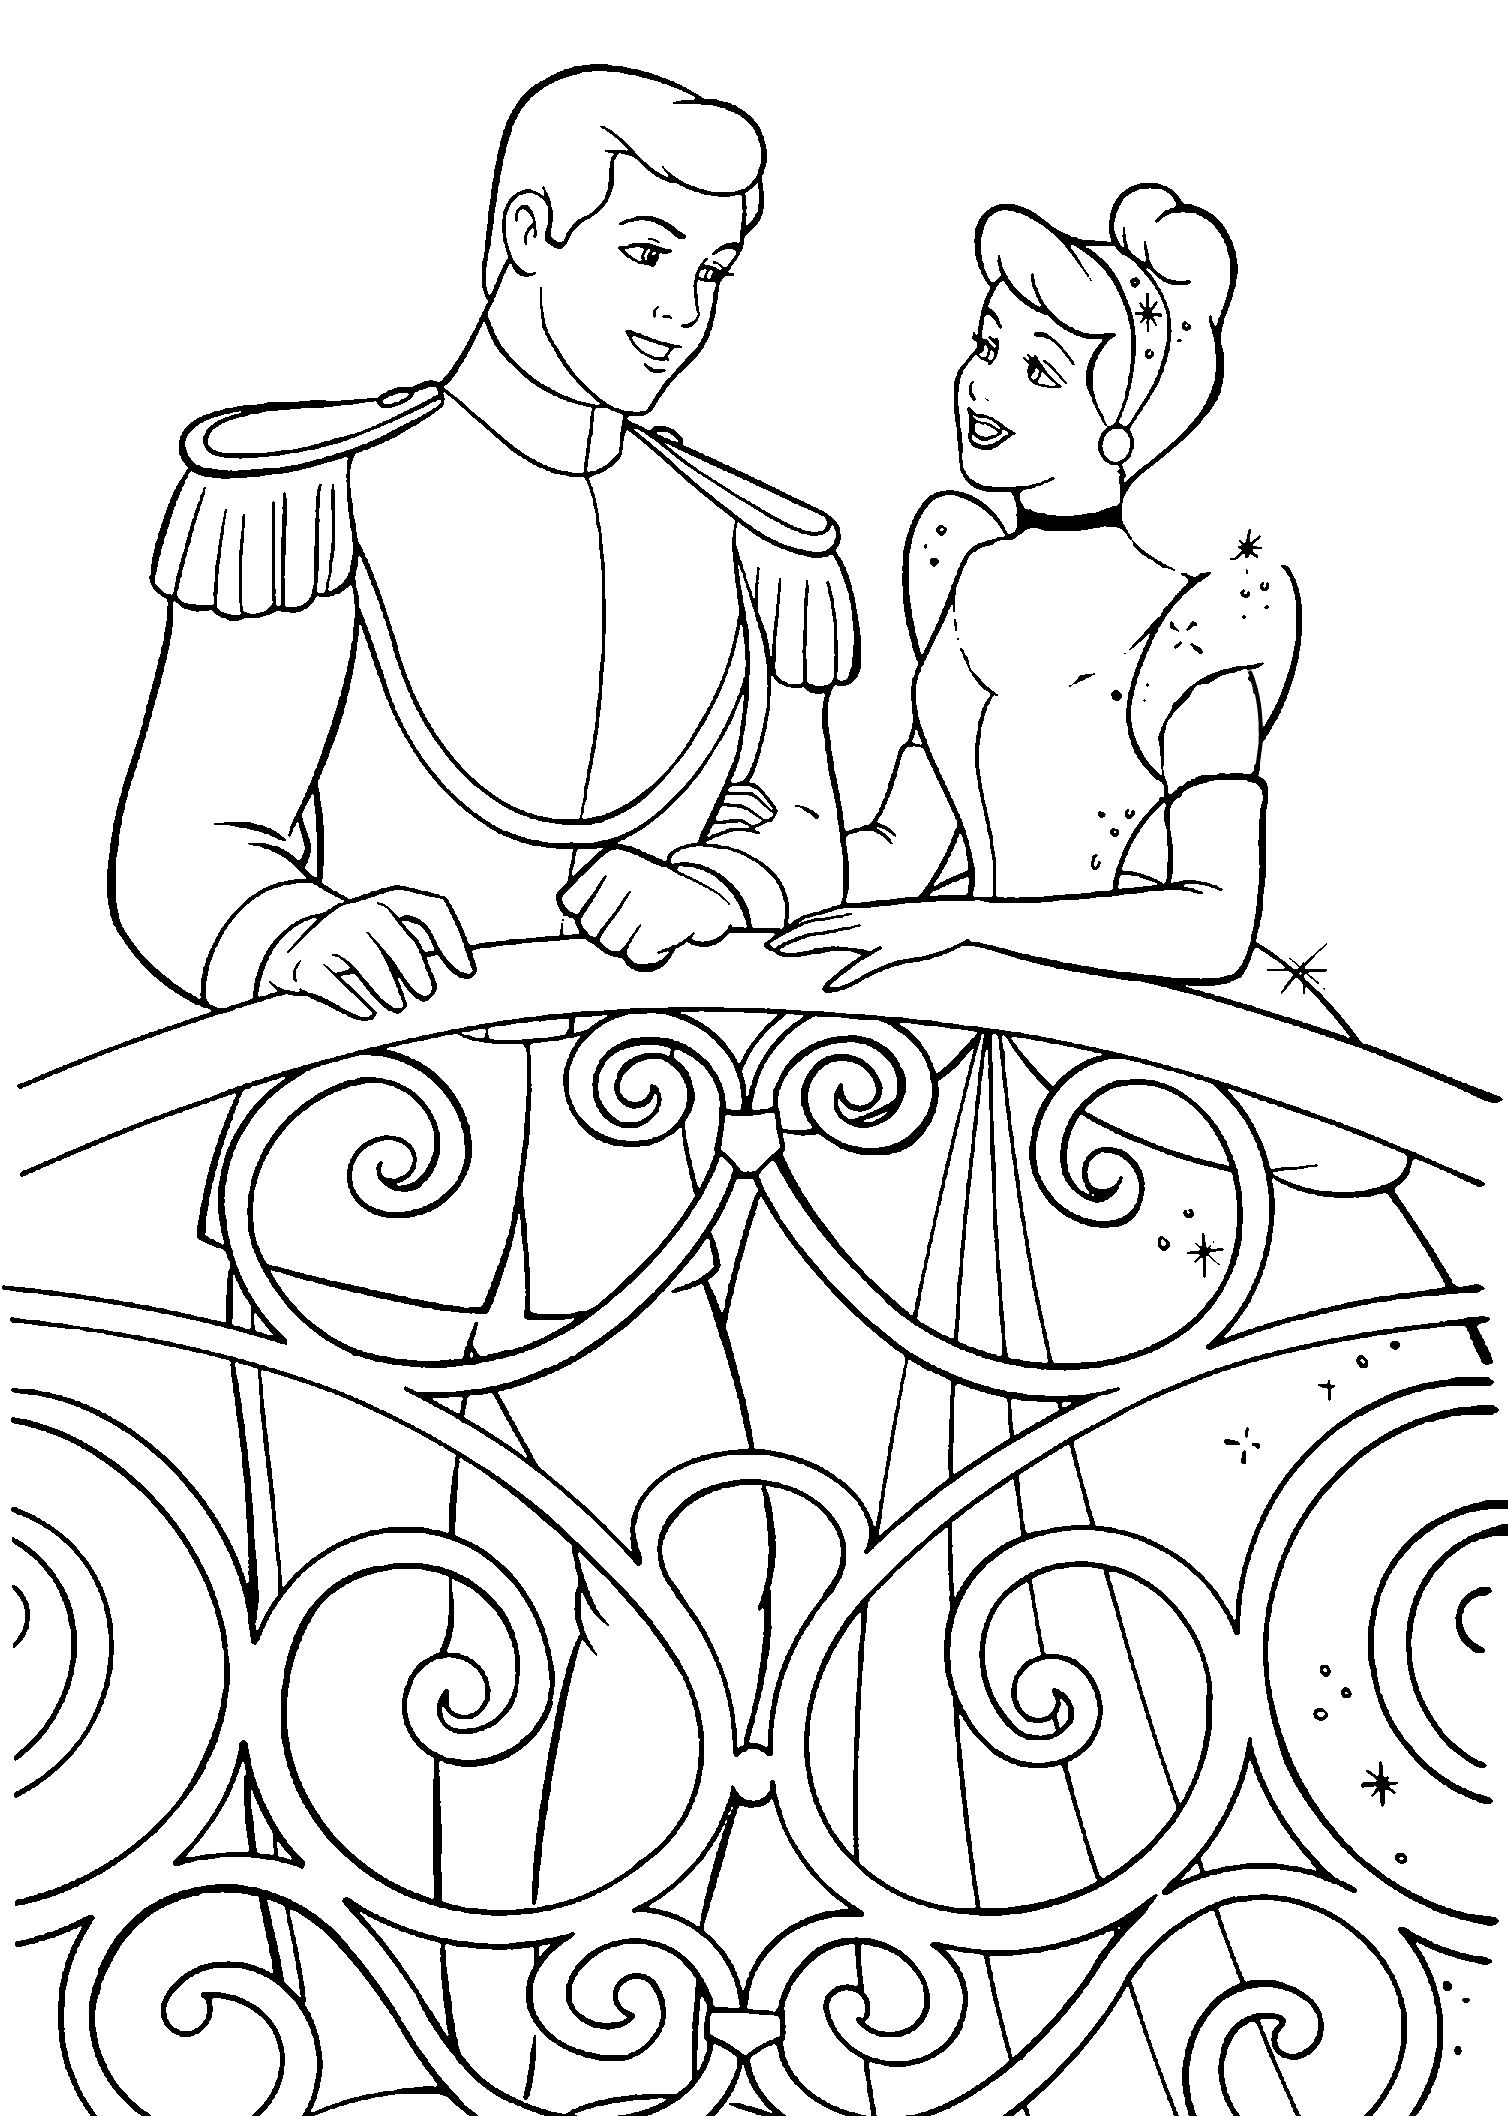 25 Coloring Pages December Coloring Pages Pinterest Cinderella